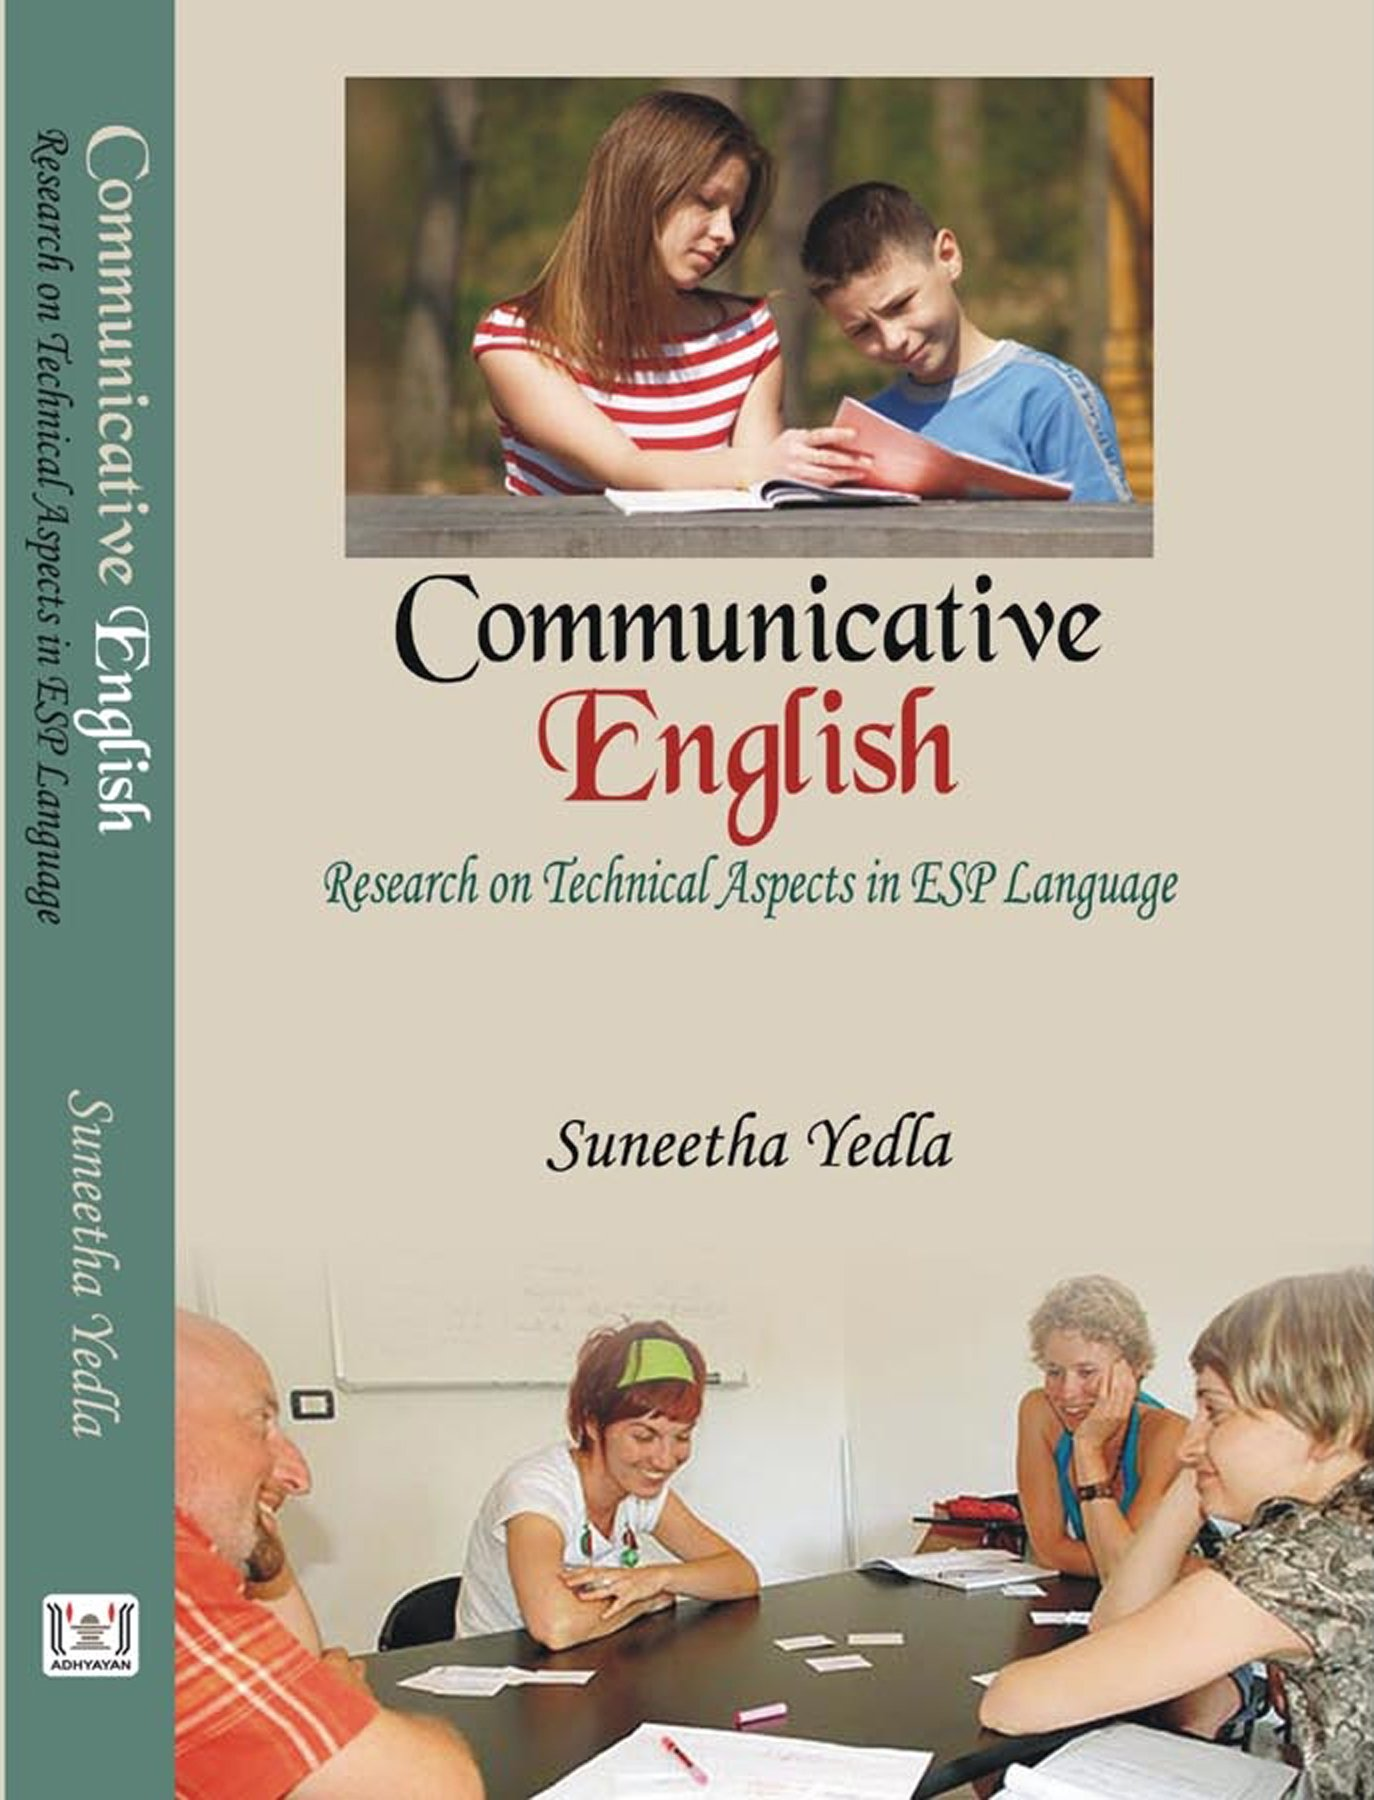 Download Communicative English Research on Technical Aspects in ESP Language PDF